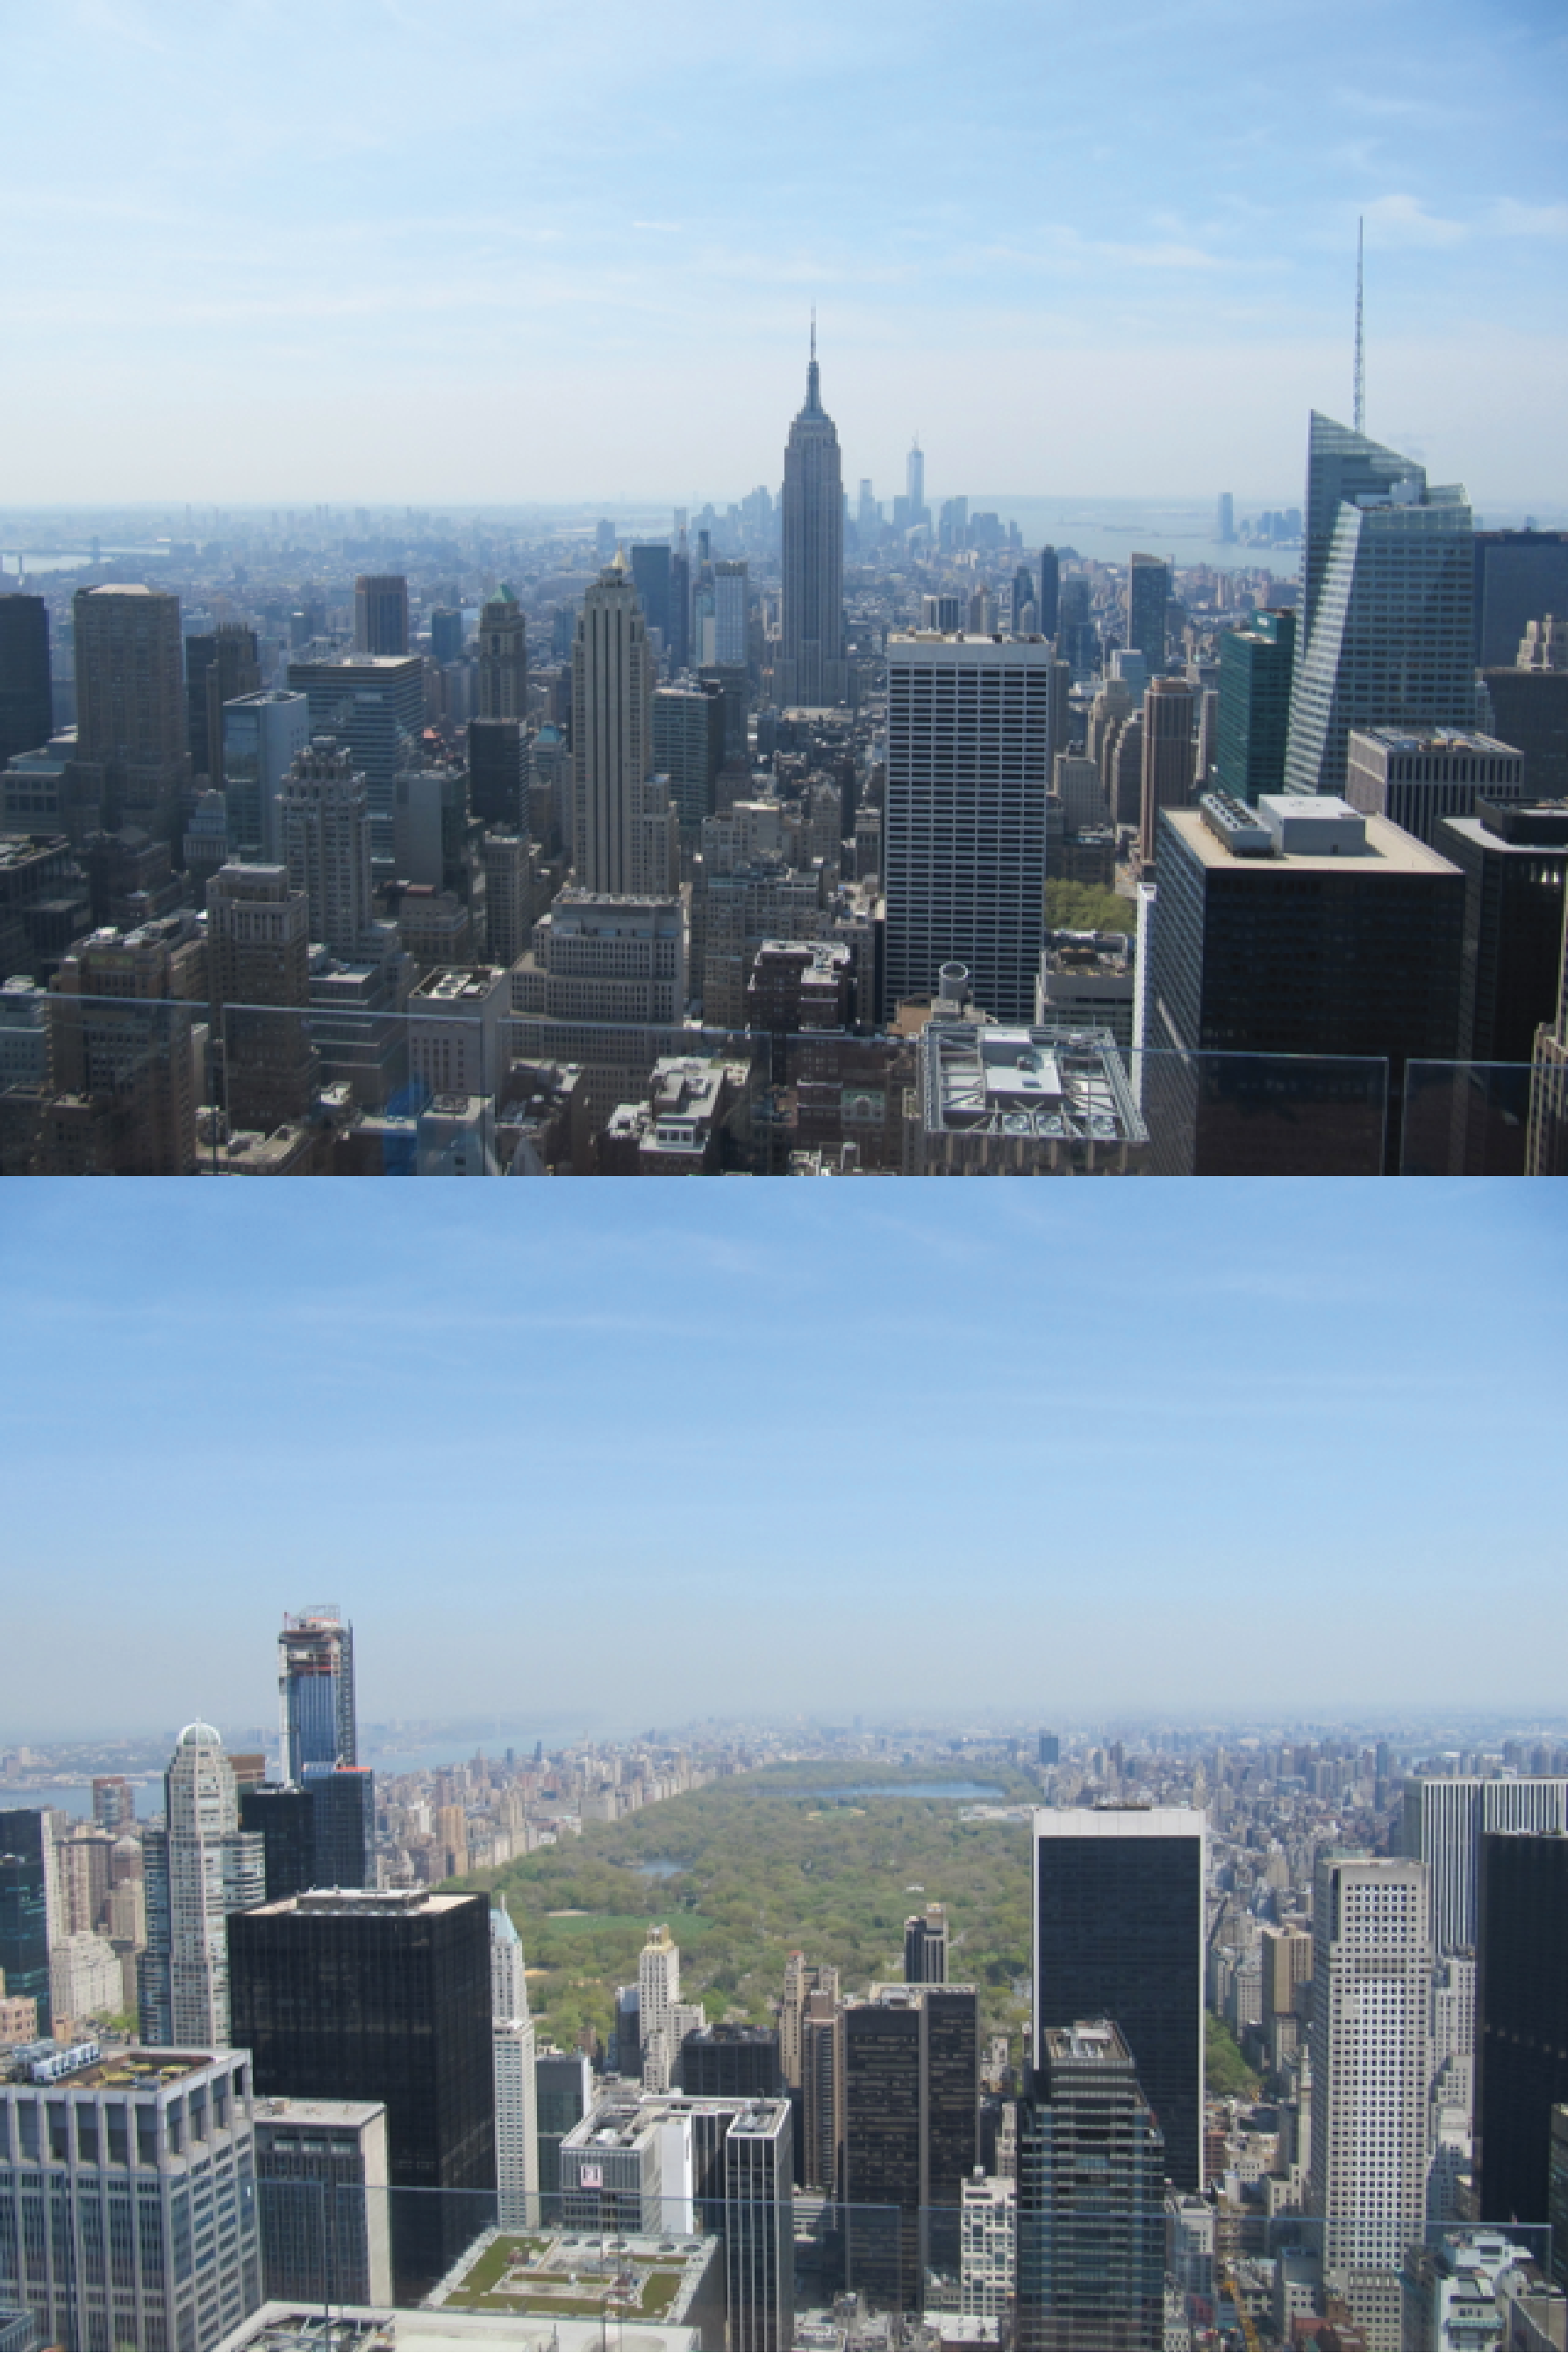 Picture 1: View of New York City from Rockefeller Center. Upper part looking to the south, Empire State Building in the foreground. Lower part looking to the north, Central Park in the middle. (Picture: hella Wittmeier)